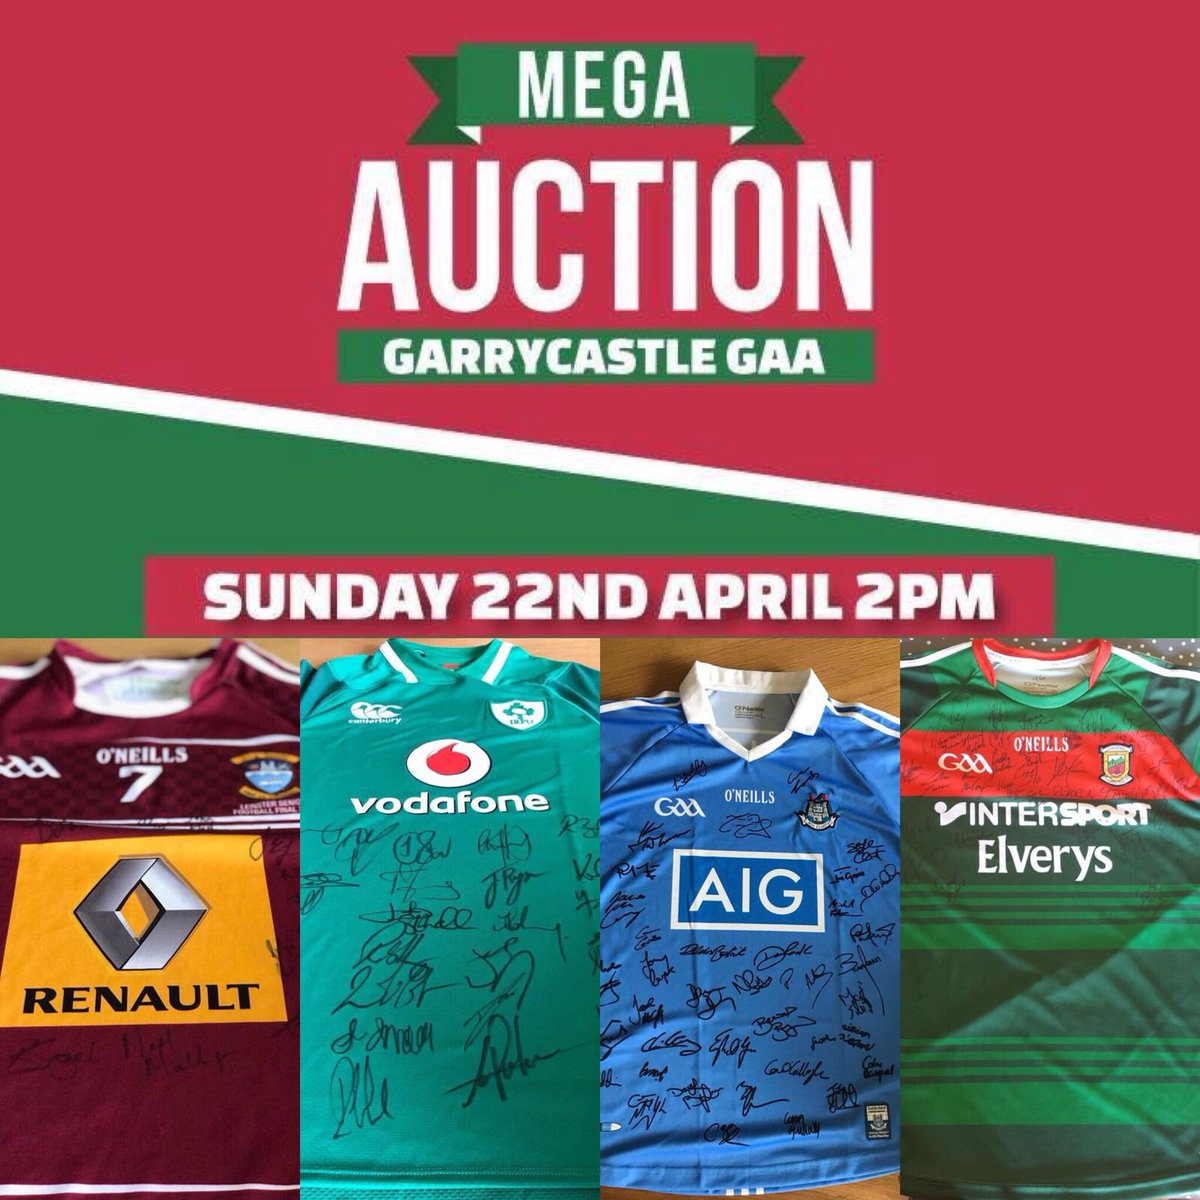 b80d0eff96e ... have an Ireland rugby Grand slam winning jersey signed, a Dublin jersey  signed & lots more... If interested in putting a reserve price on any -  send me ...